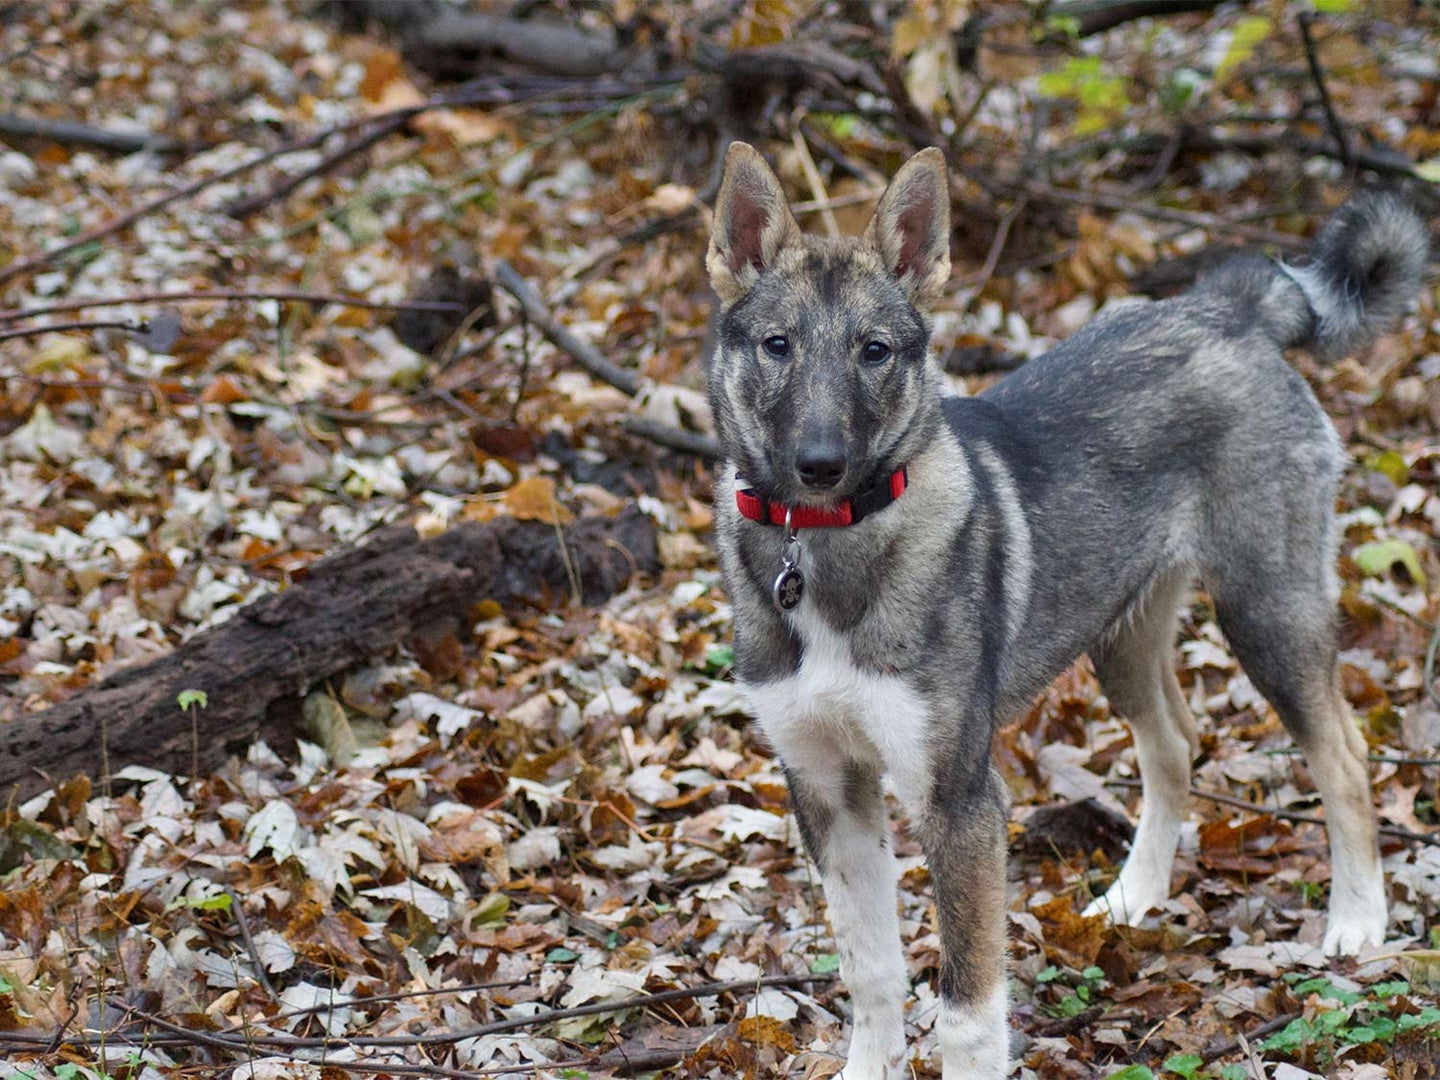 A Laika hunting puppy walking through the woods.